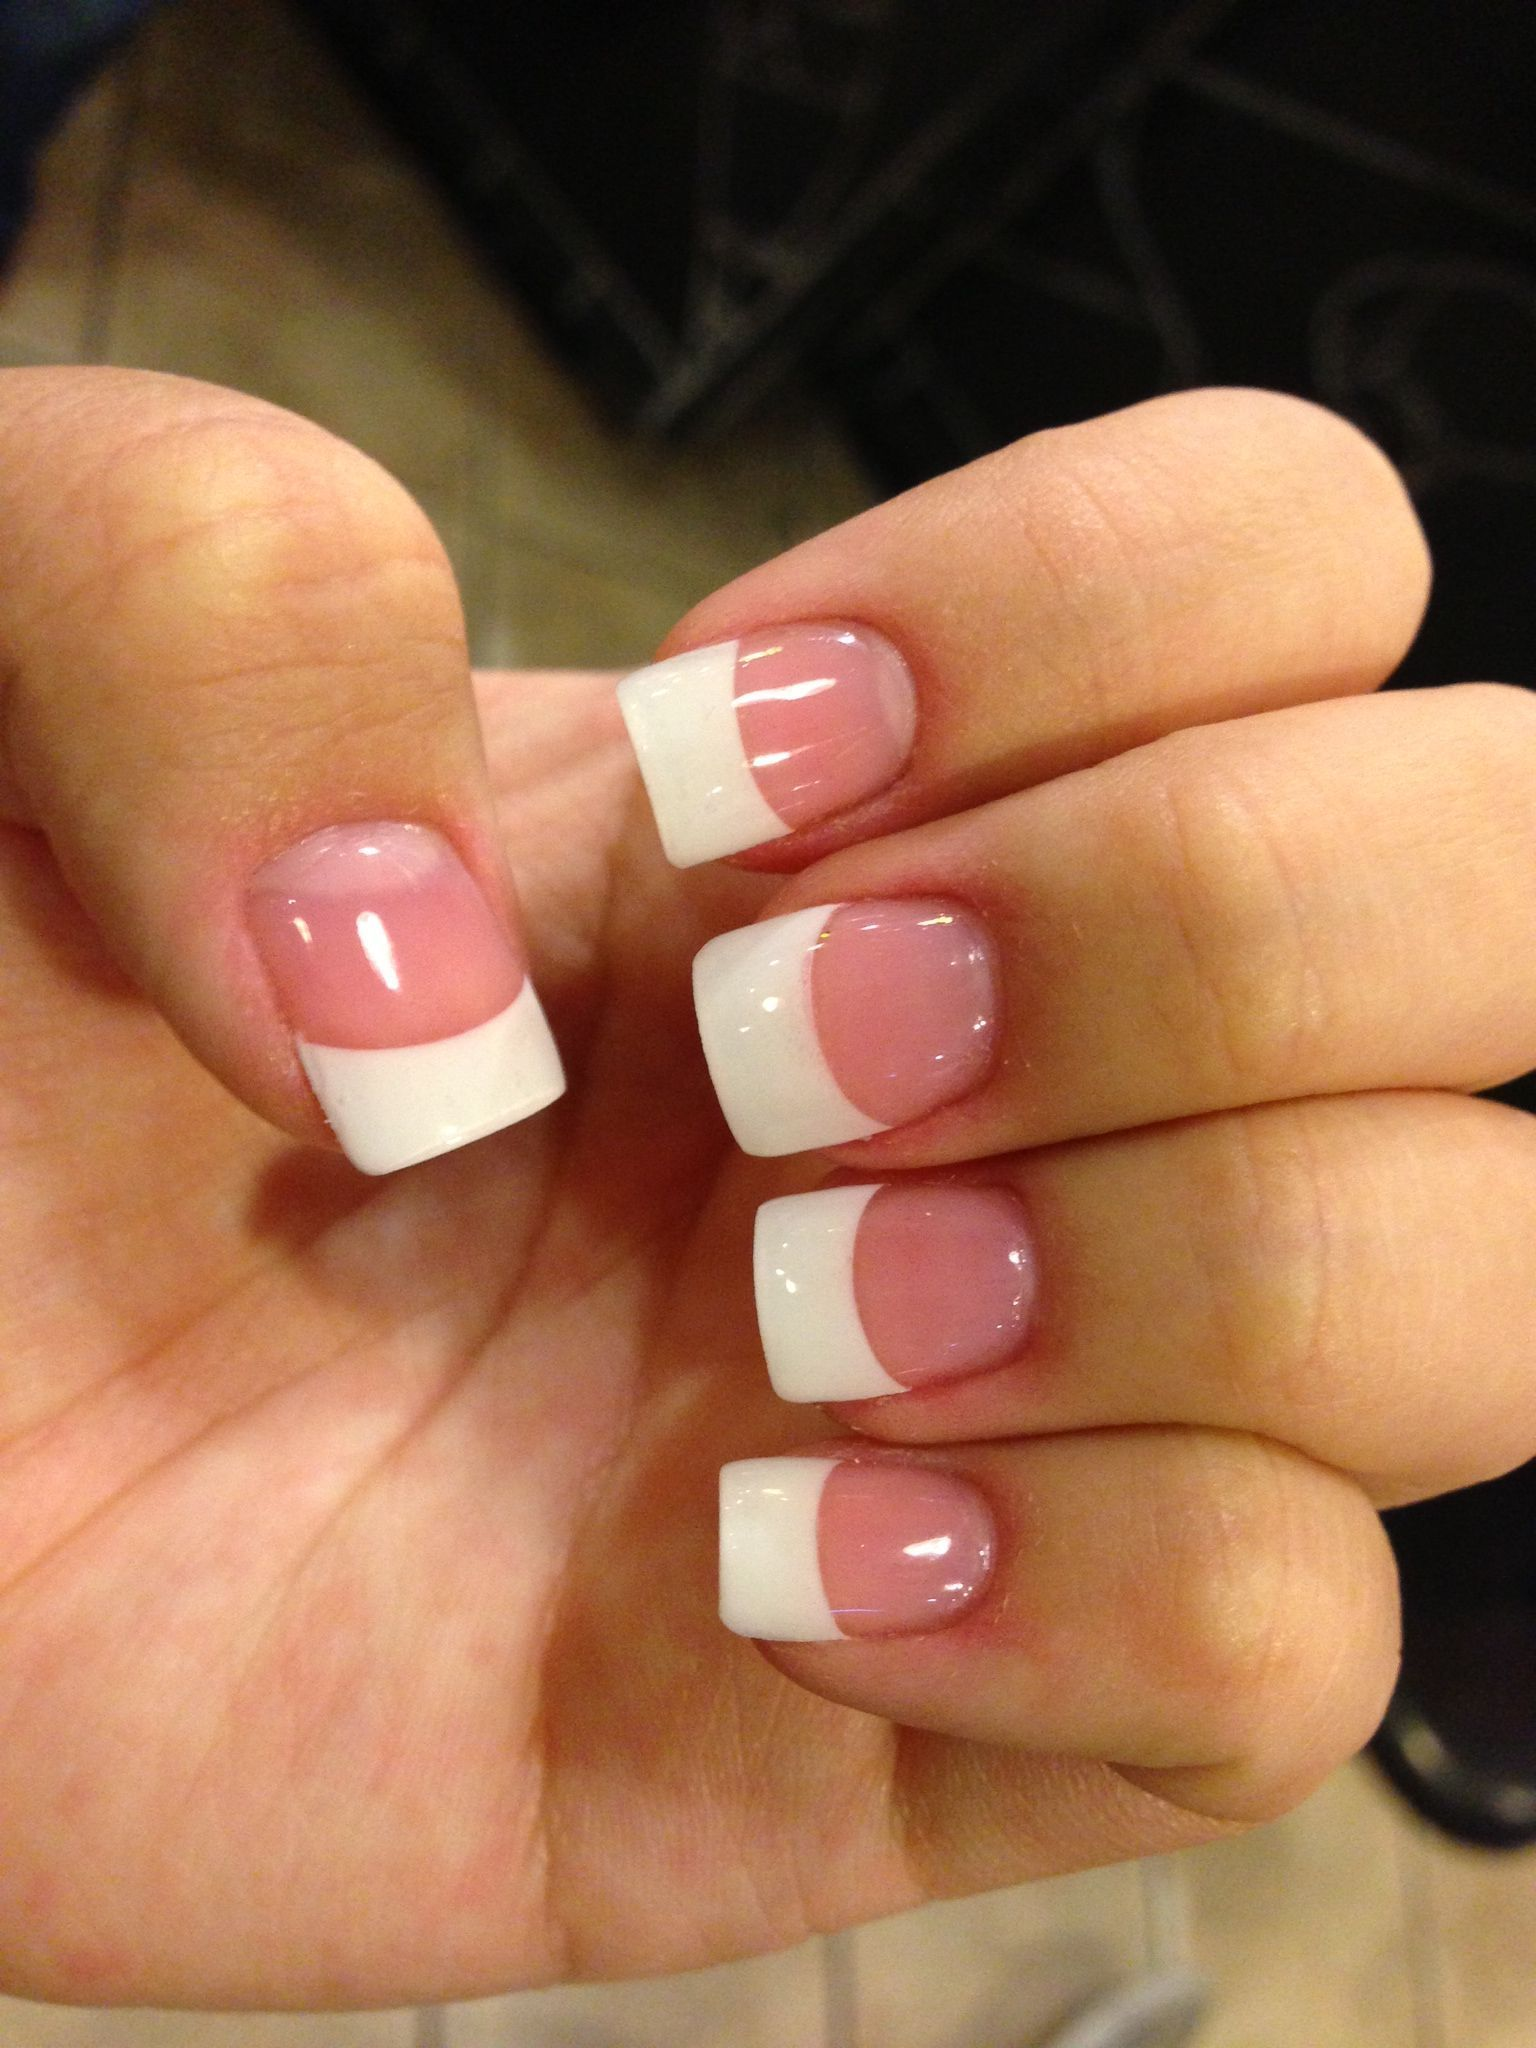 White Tip Acrylic With Gel Top Coat Acrylicnailsalmond In 2020 White Tip Nails White Tip Acrylic Nails French Tip Acrylic Nails